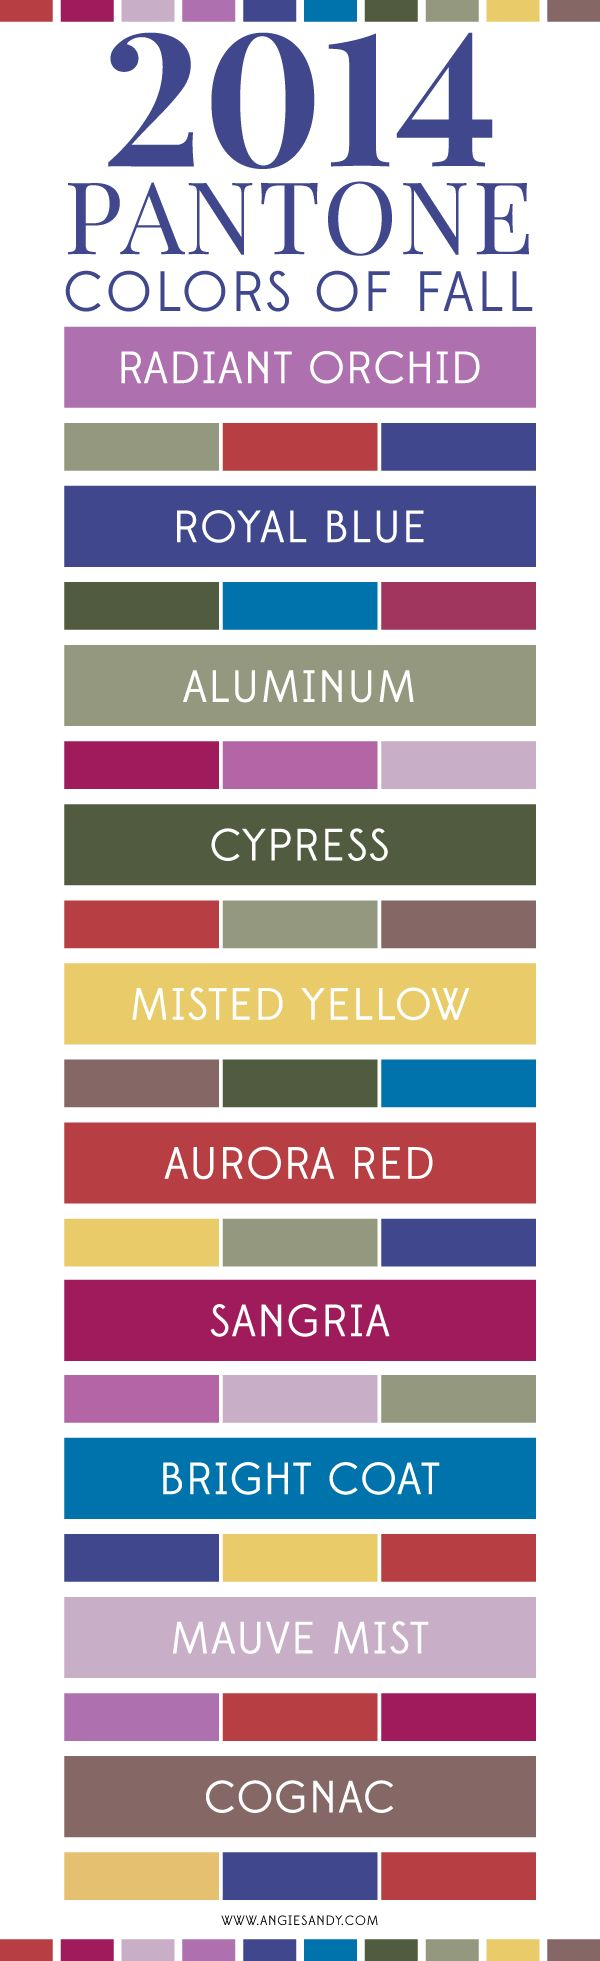 Pantone Colors of Fall 2014 I think I could work with Aluminium, Royal Blue & Cypress with hints of the Misted Yellow & Bright Coat.